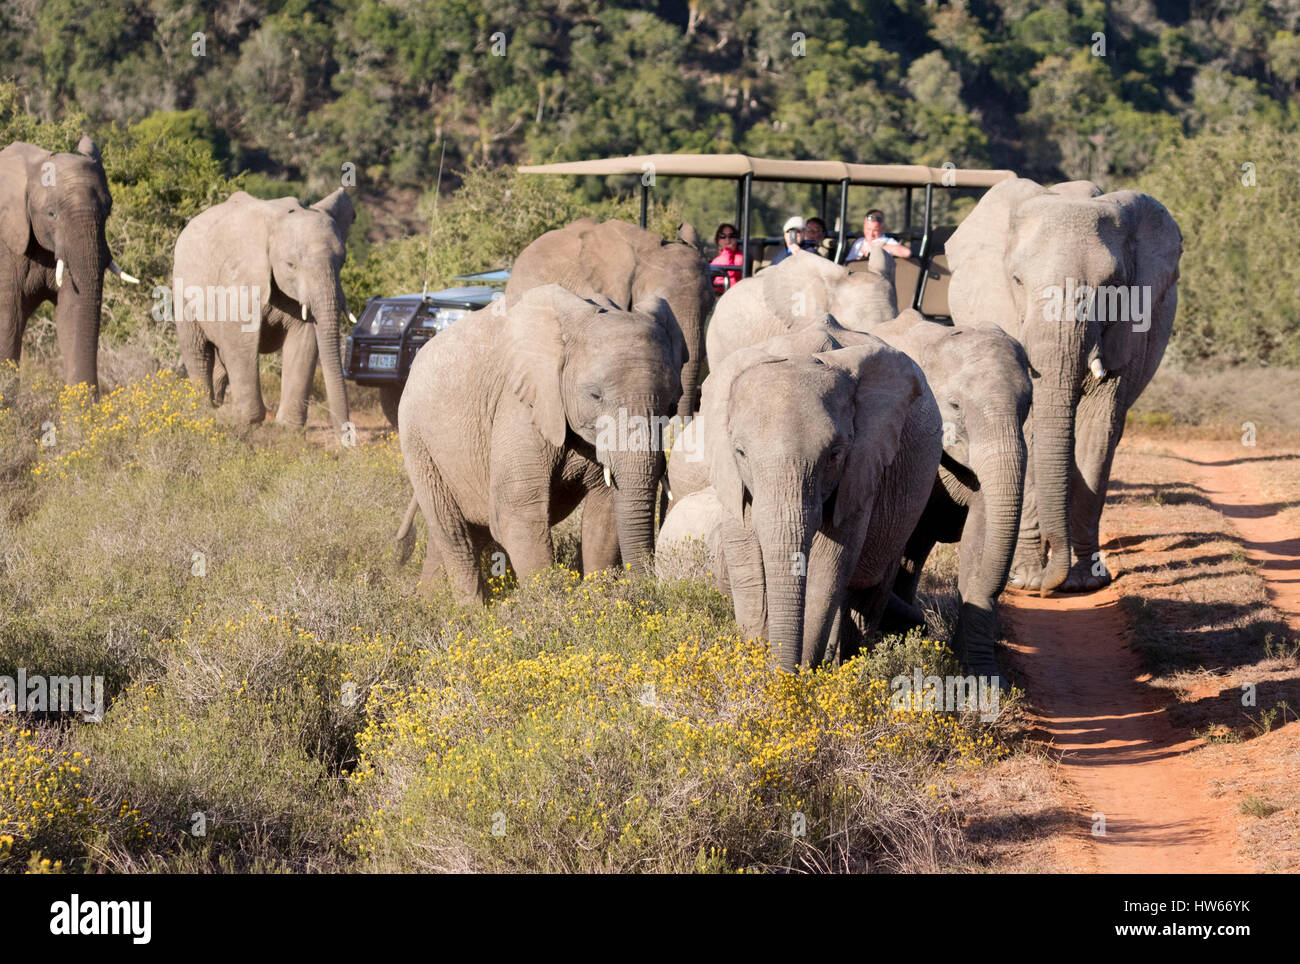 Africa safari - a jeep and african elephants, Shamwari Game reserve, Eastern Cape, South Africa - Stock Image